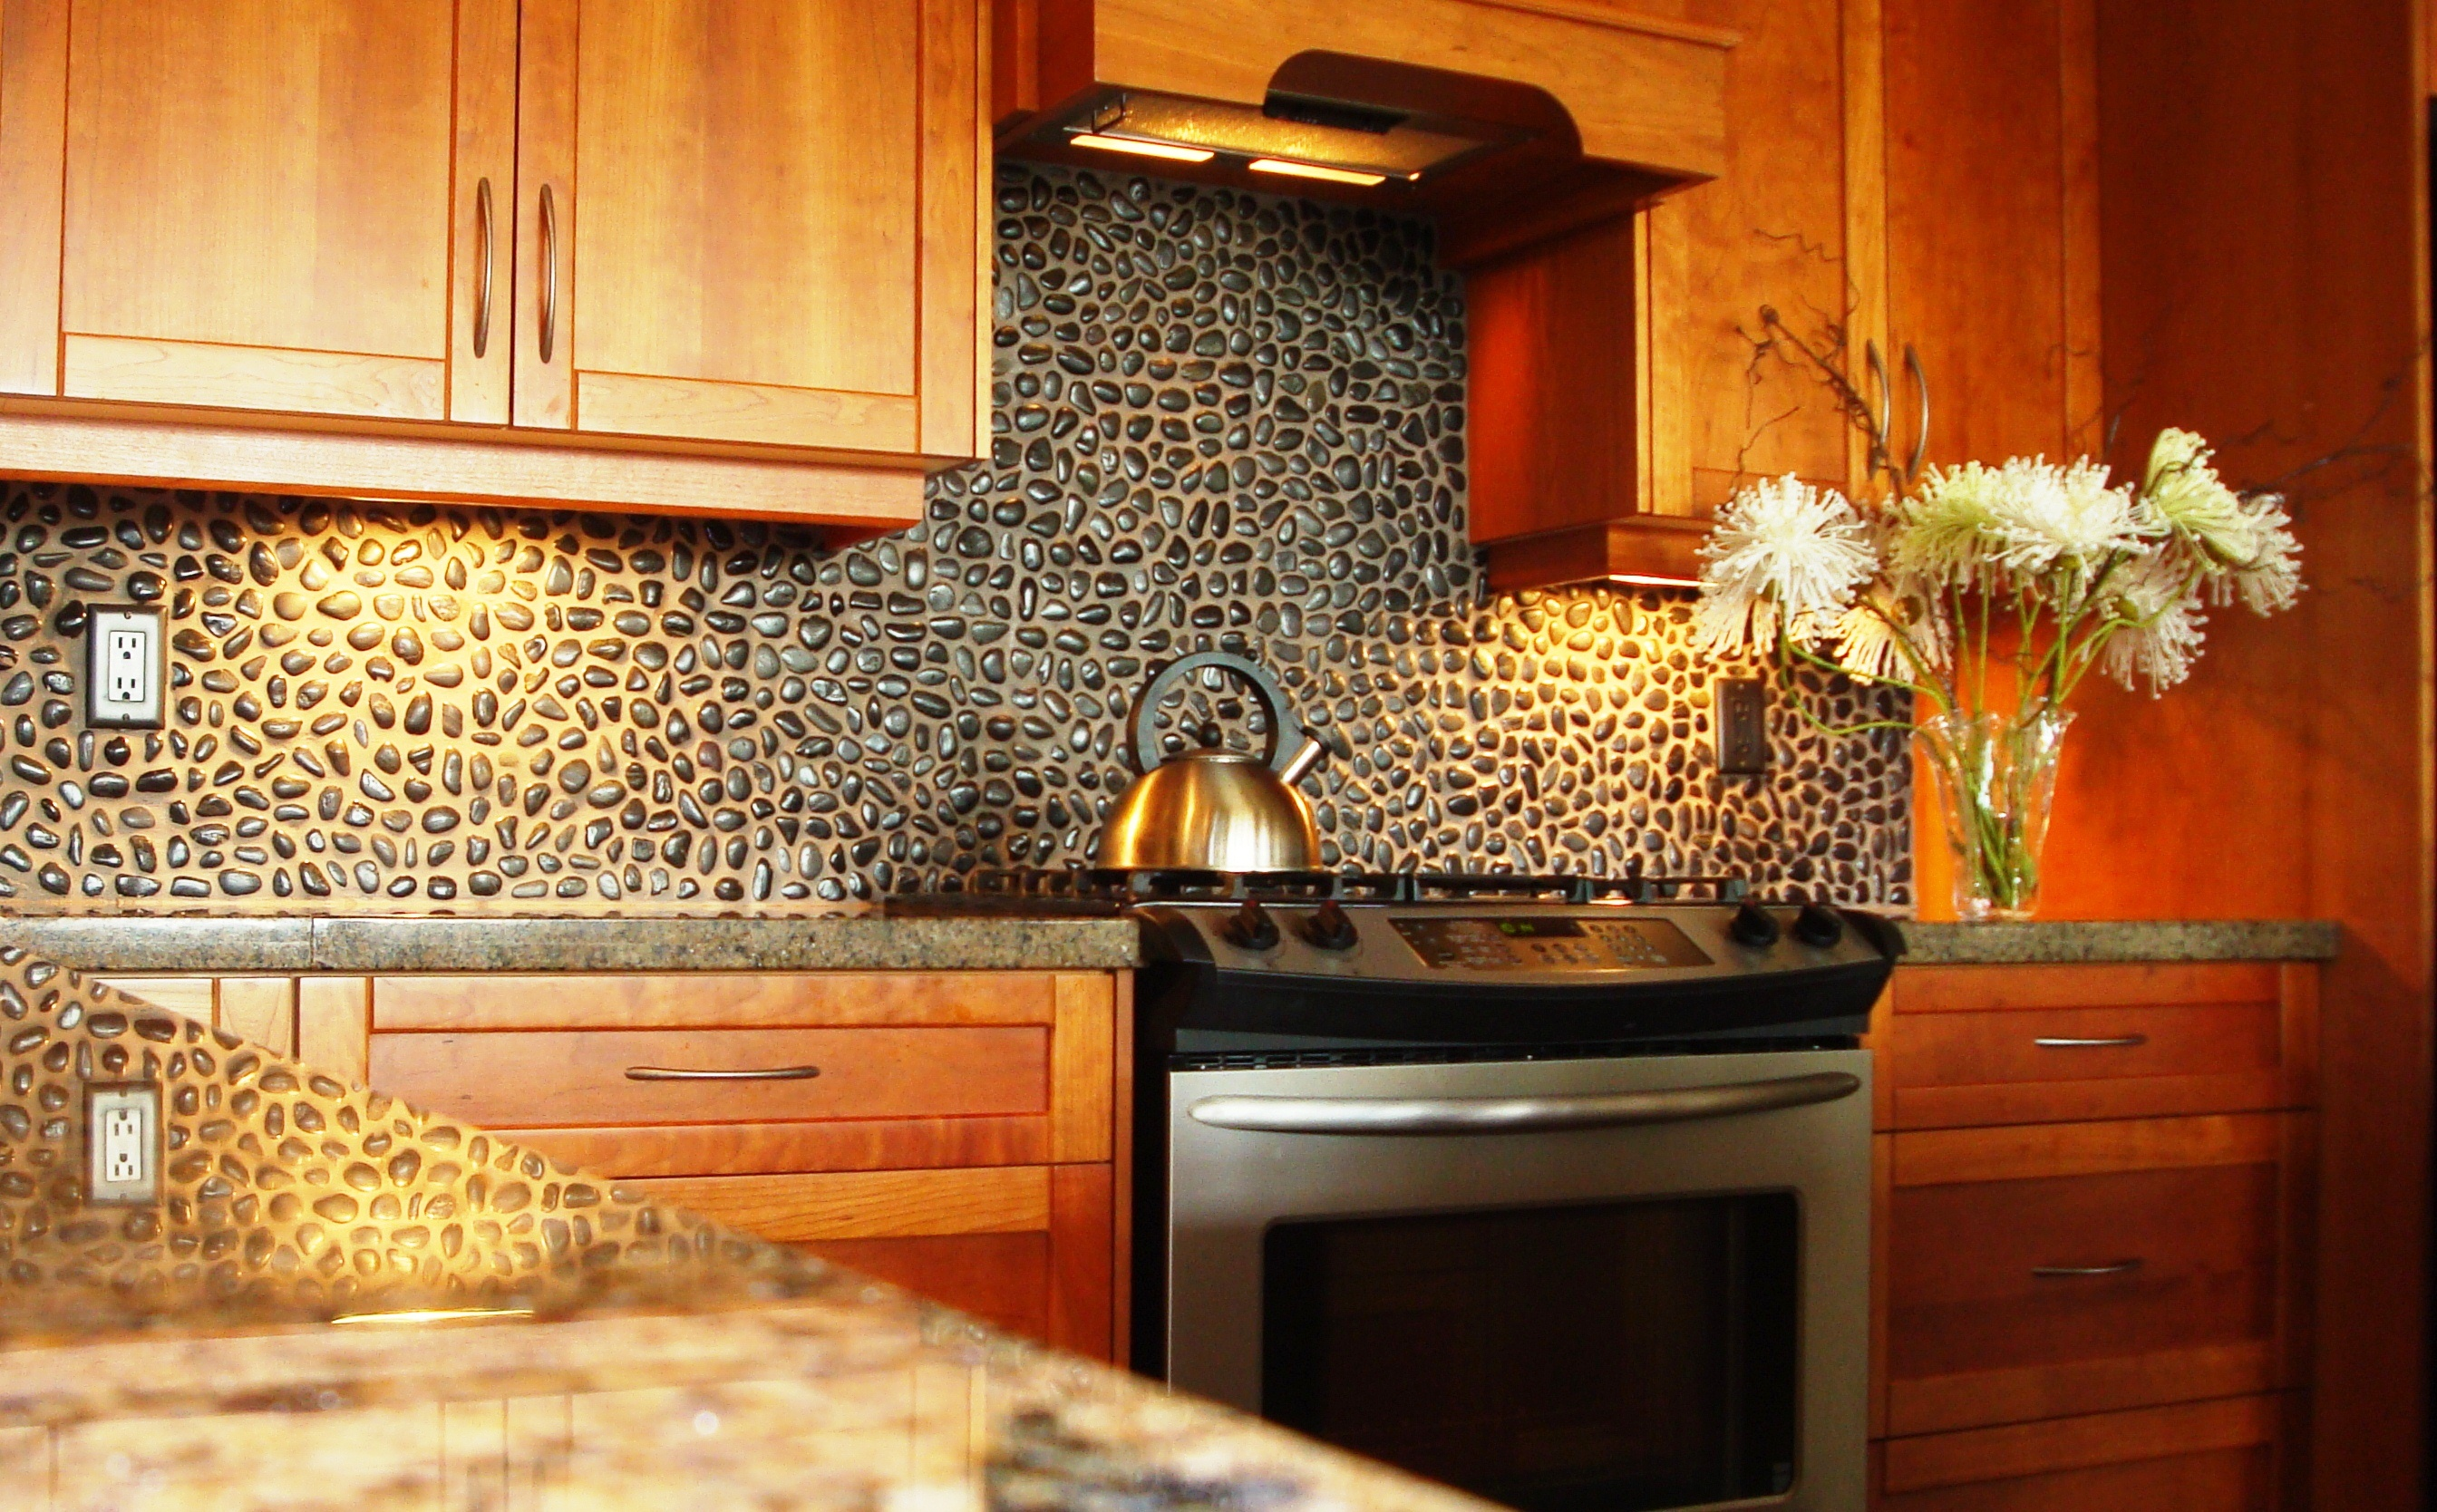 50 Best Kitchen Backsplash Ideas for 2017